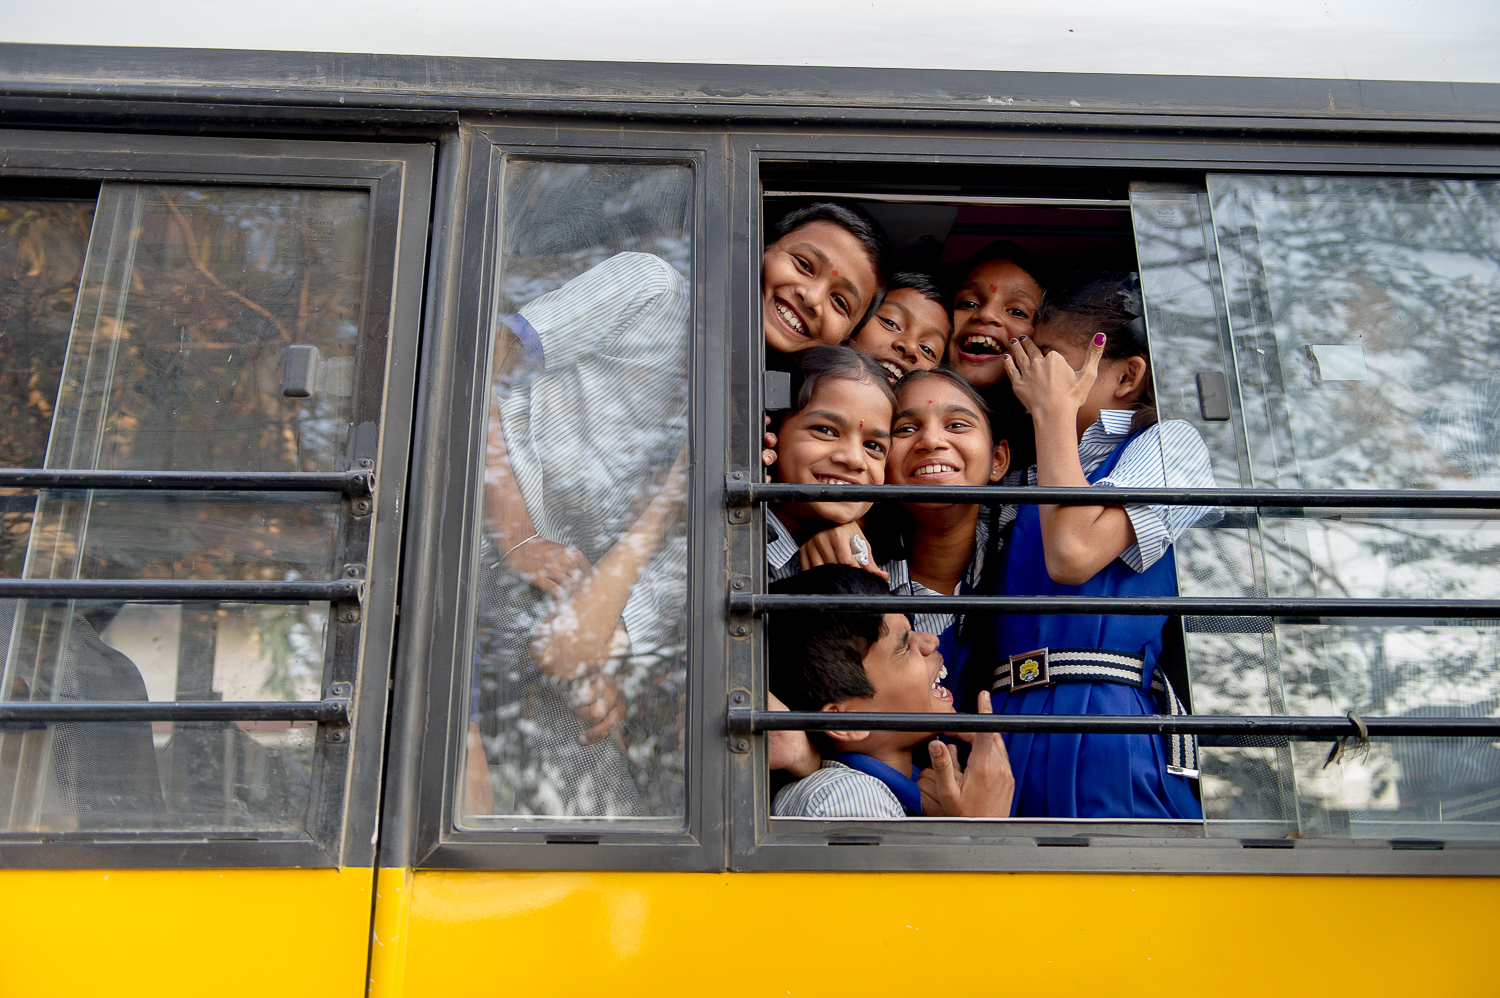 School bus Mumbai, 2017